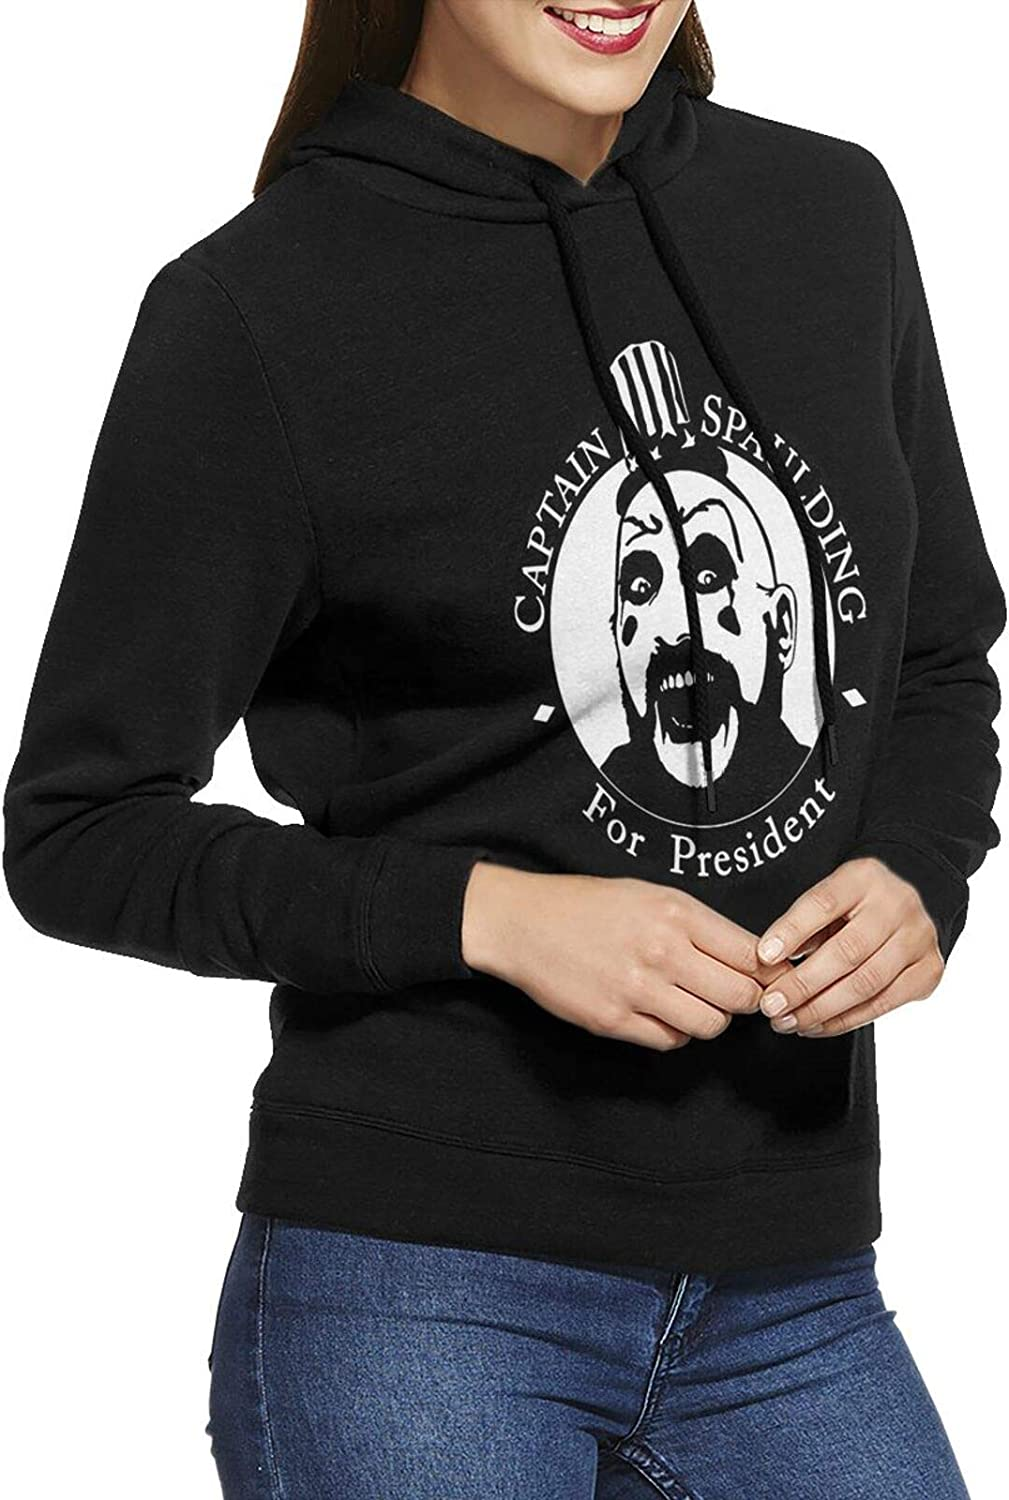 Captain Spaulding Hoodie Popular shop is the lowest price challenge Female Casual Cotton In stock S Long Sweatshirts